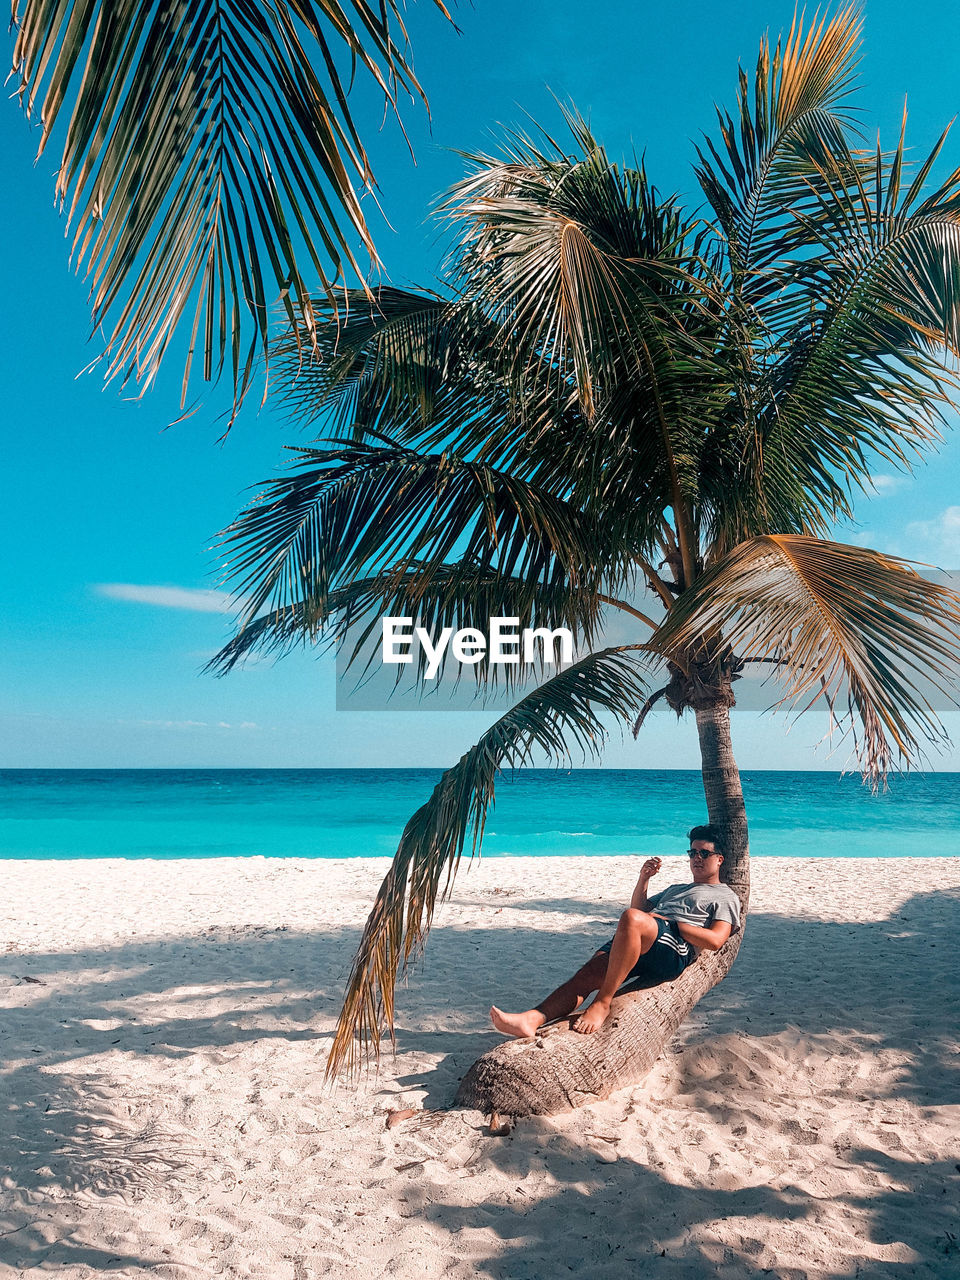 Man Resting On Palm Tree At Beach Against Sky